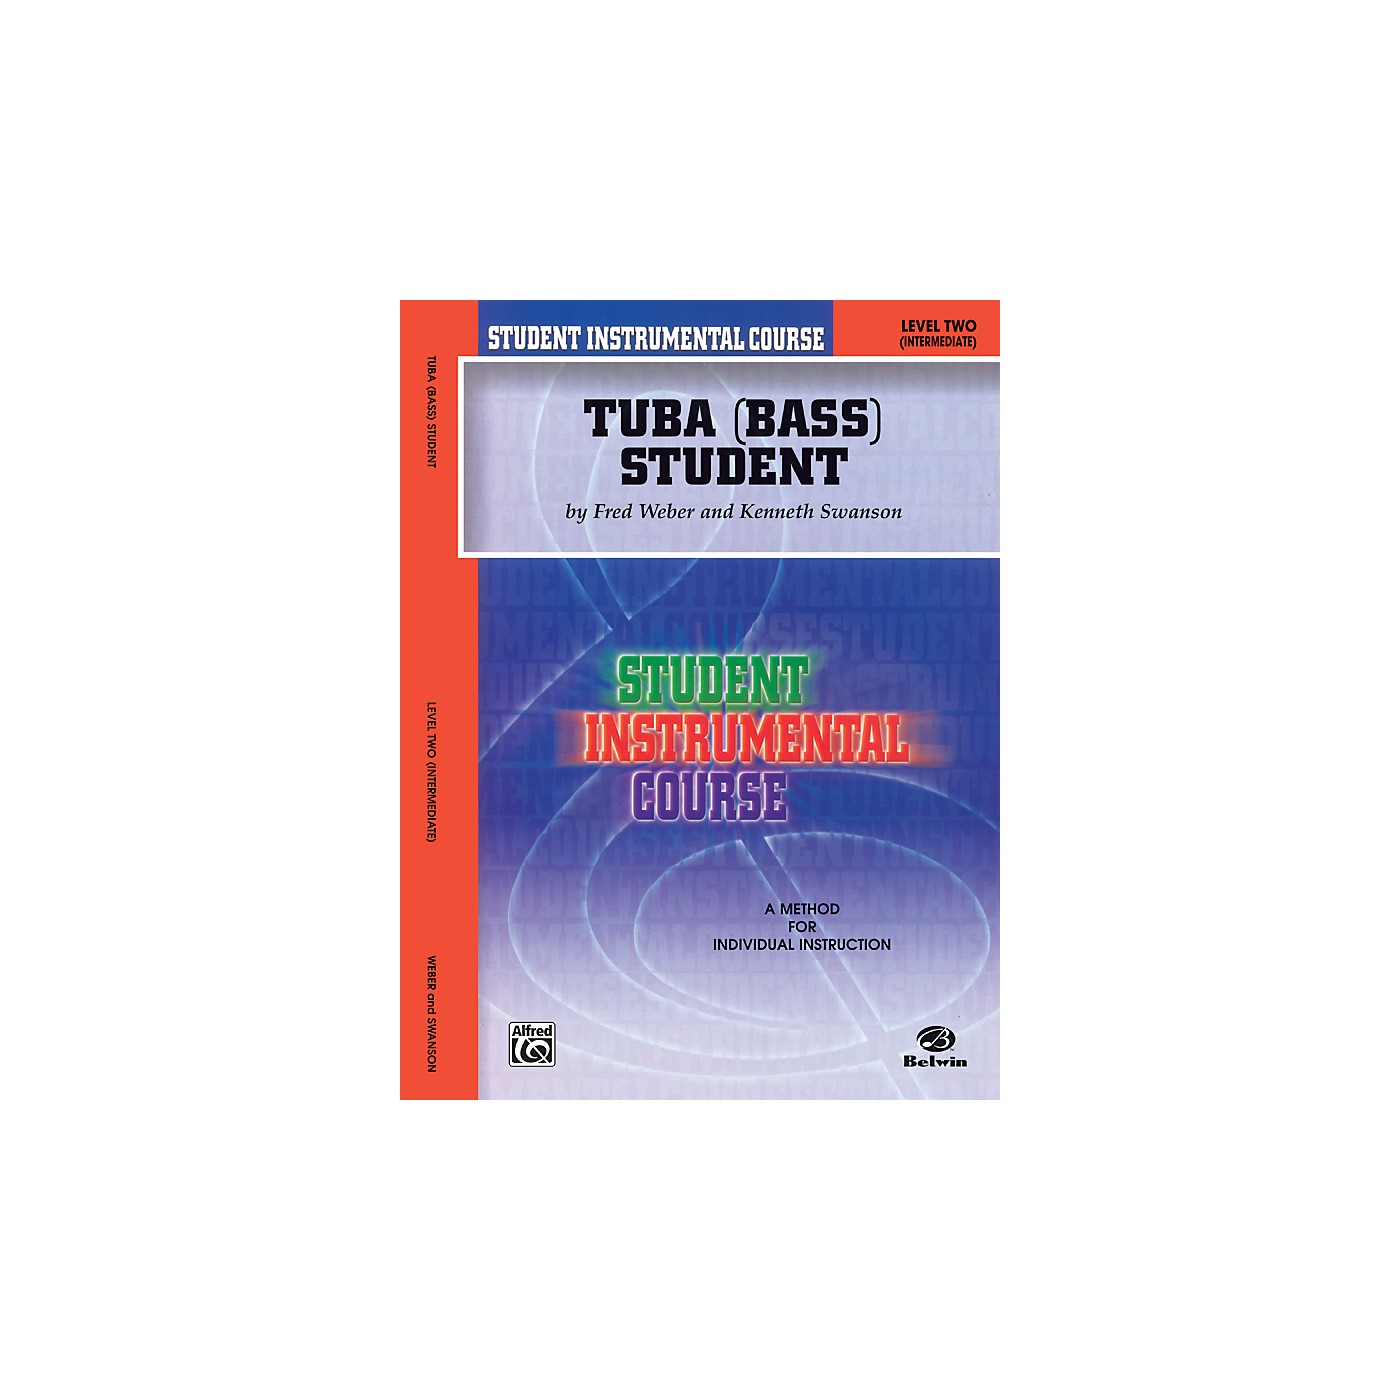 Alfred Student Instrumental Course Tuba Student Level 2 Book thumbnail